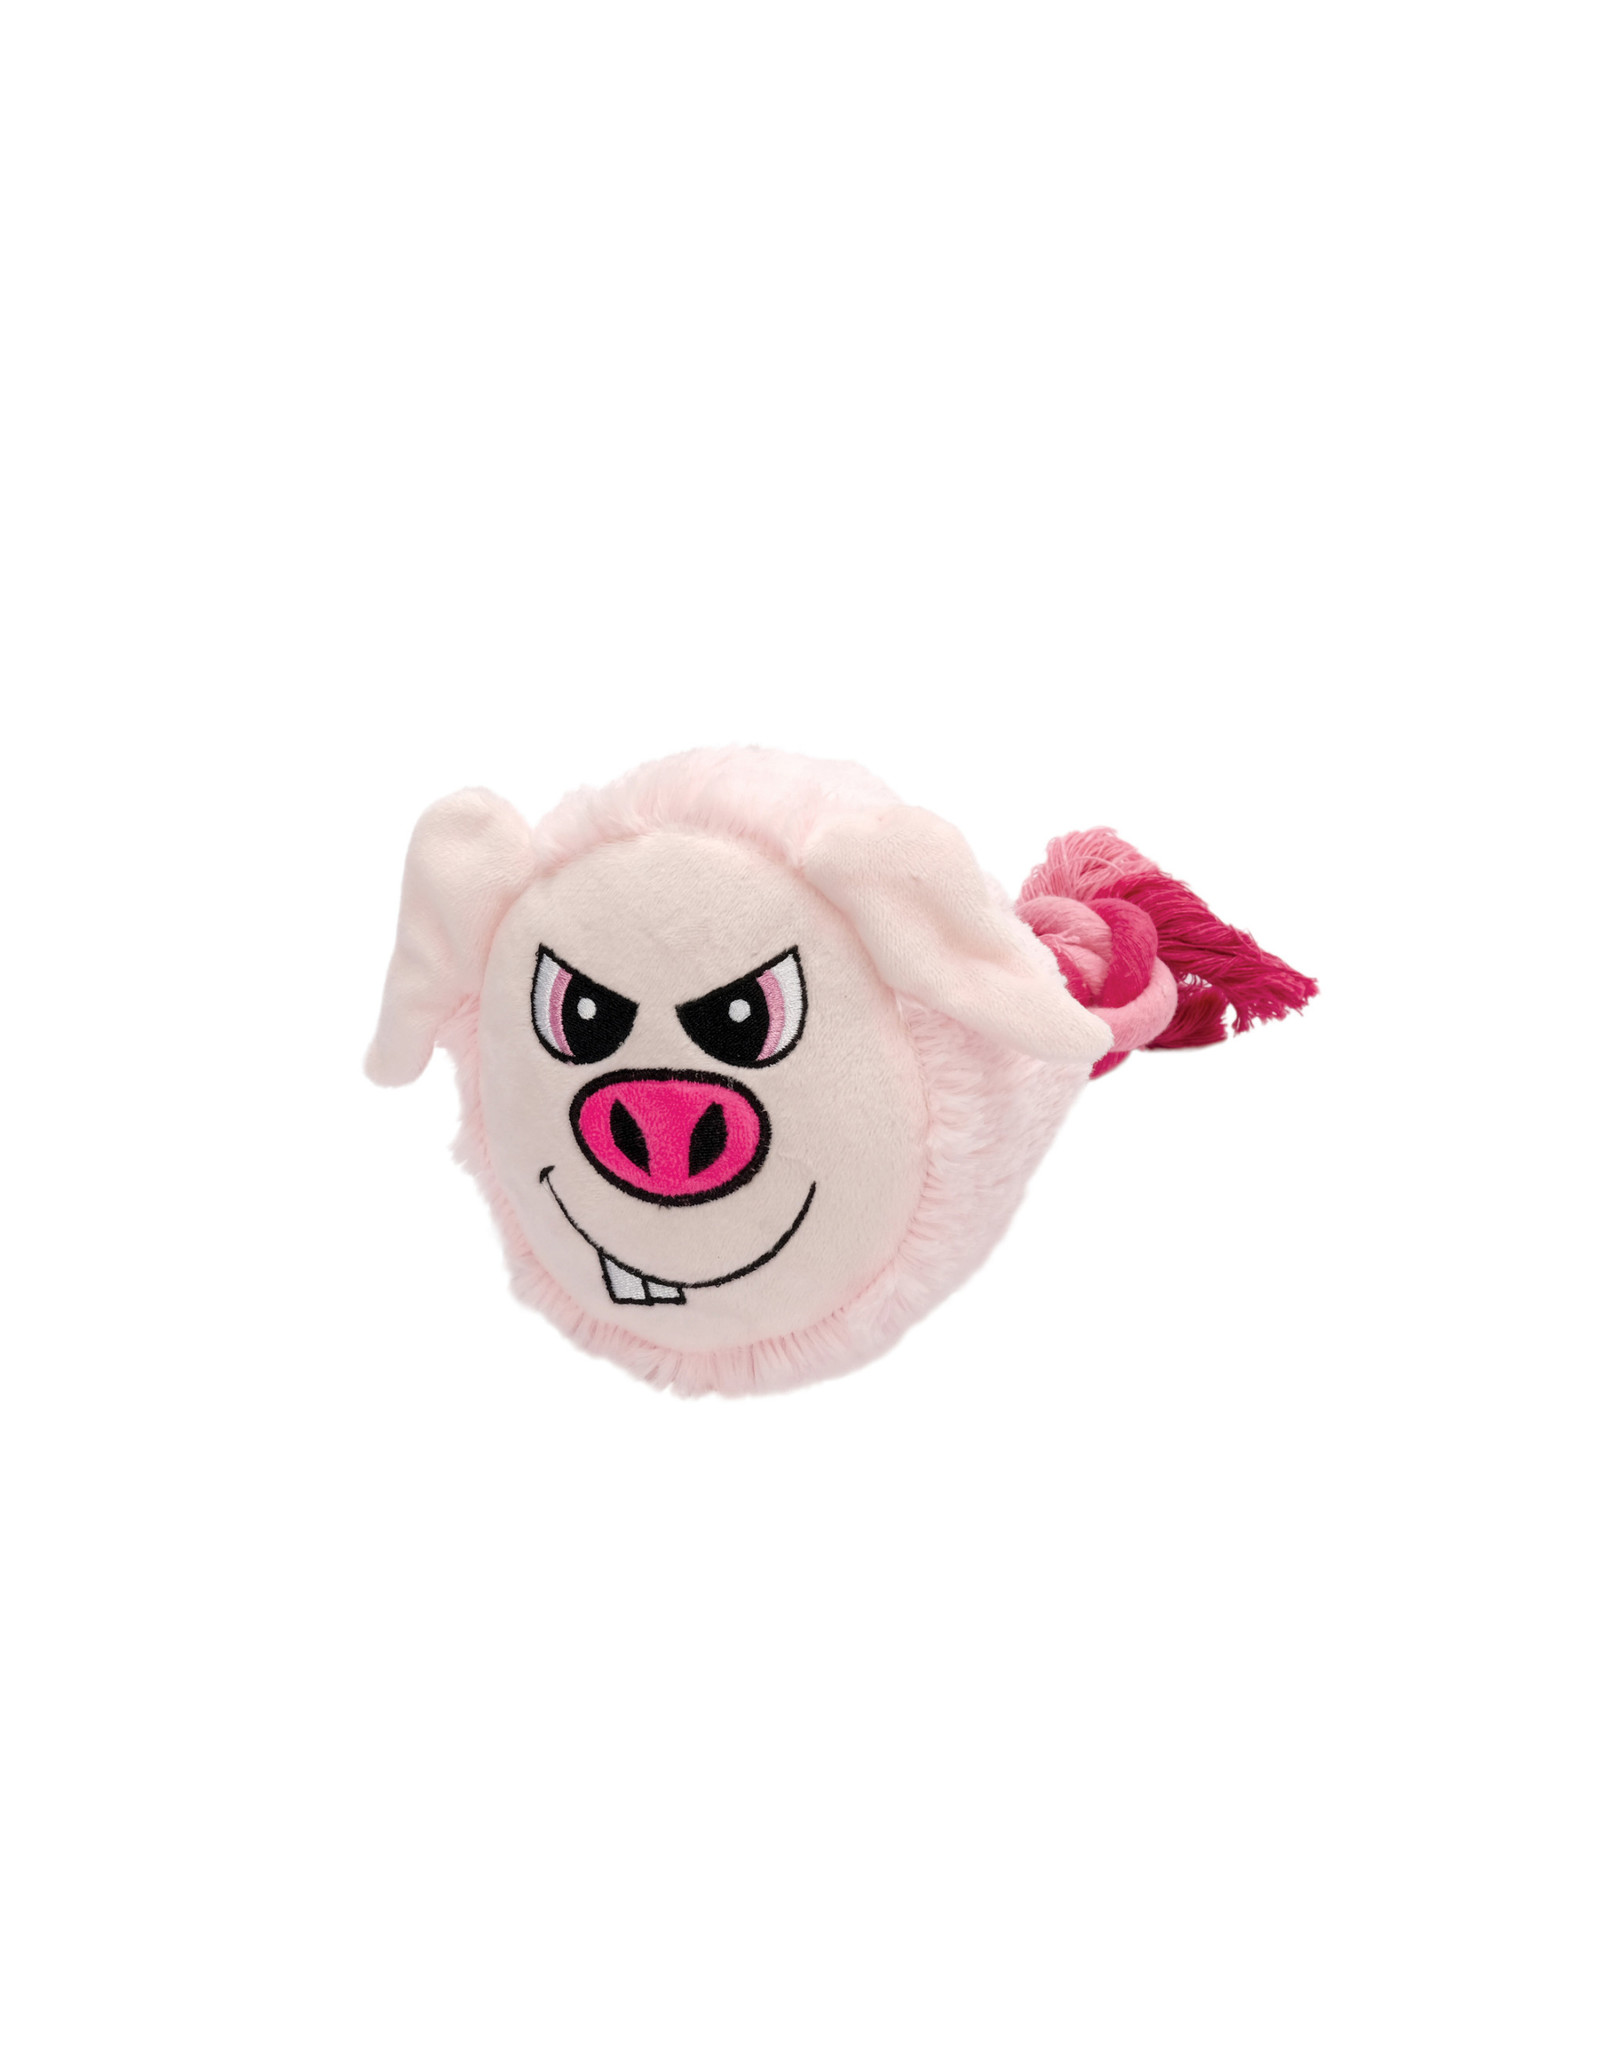 DO - Dogit Dogit Stuffies Dog Toy – Big Head Friend - Pig - 23 cm (9 in)